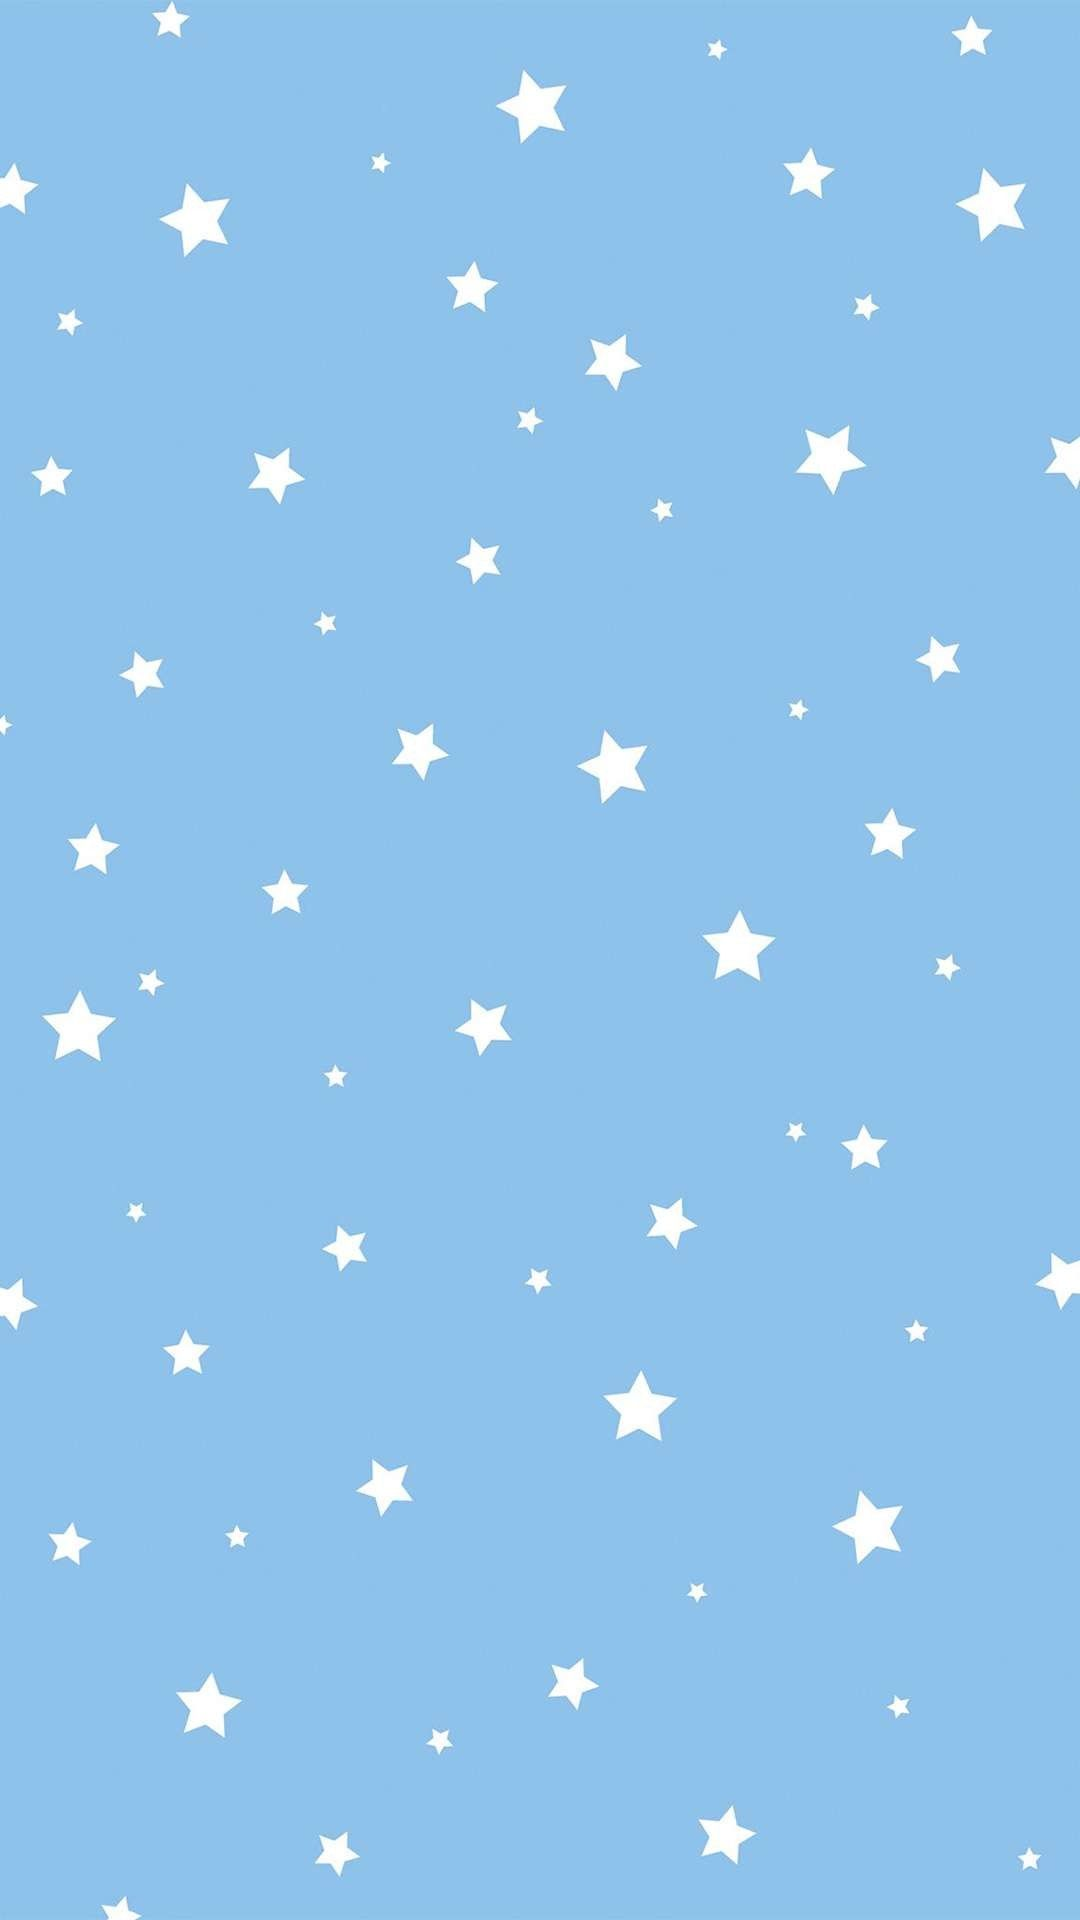 Blue stars Iphone background wallpaper